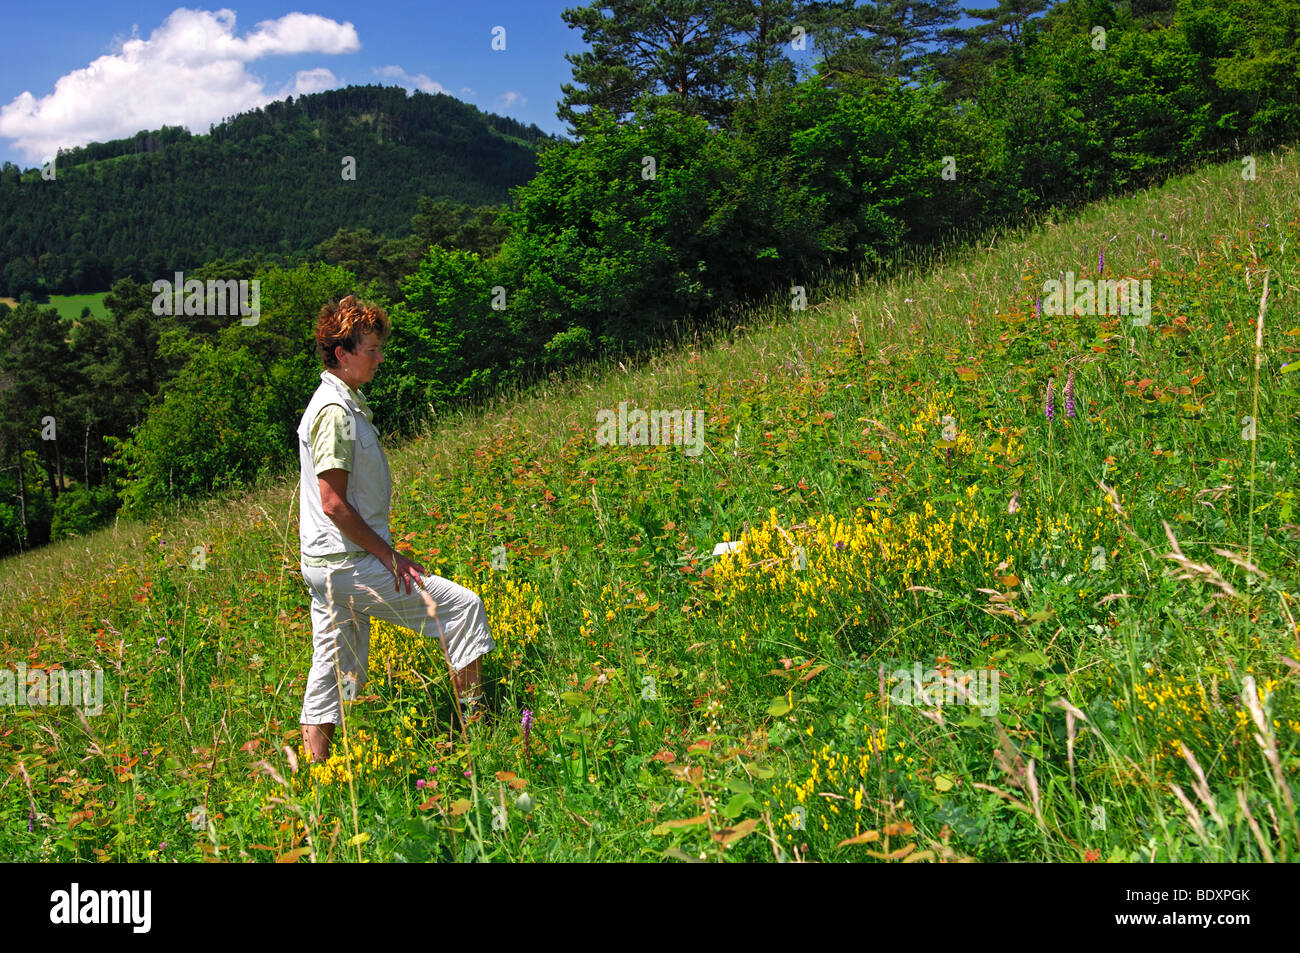 Woman looking at plants on a round tour on the orchid natur trail Erlingsbach, Switzerland - Stock Image